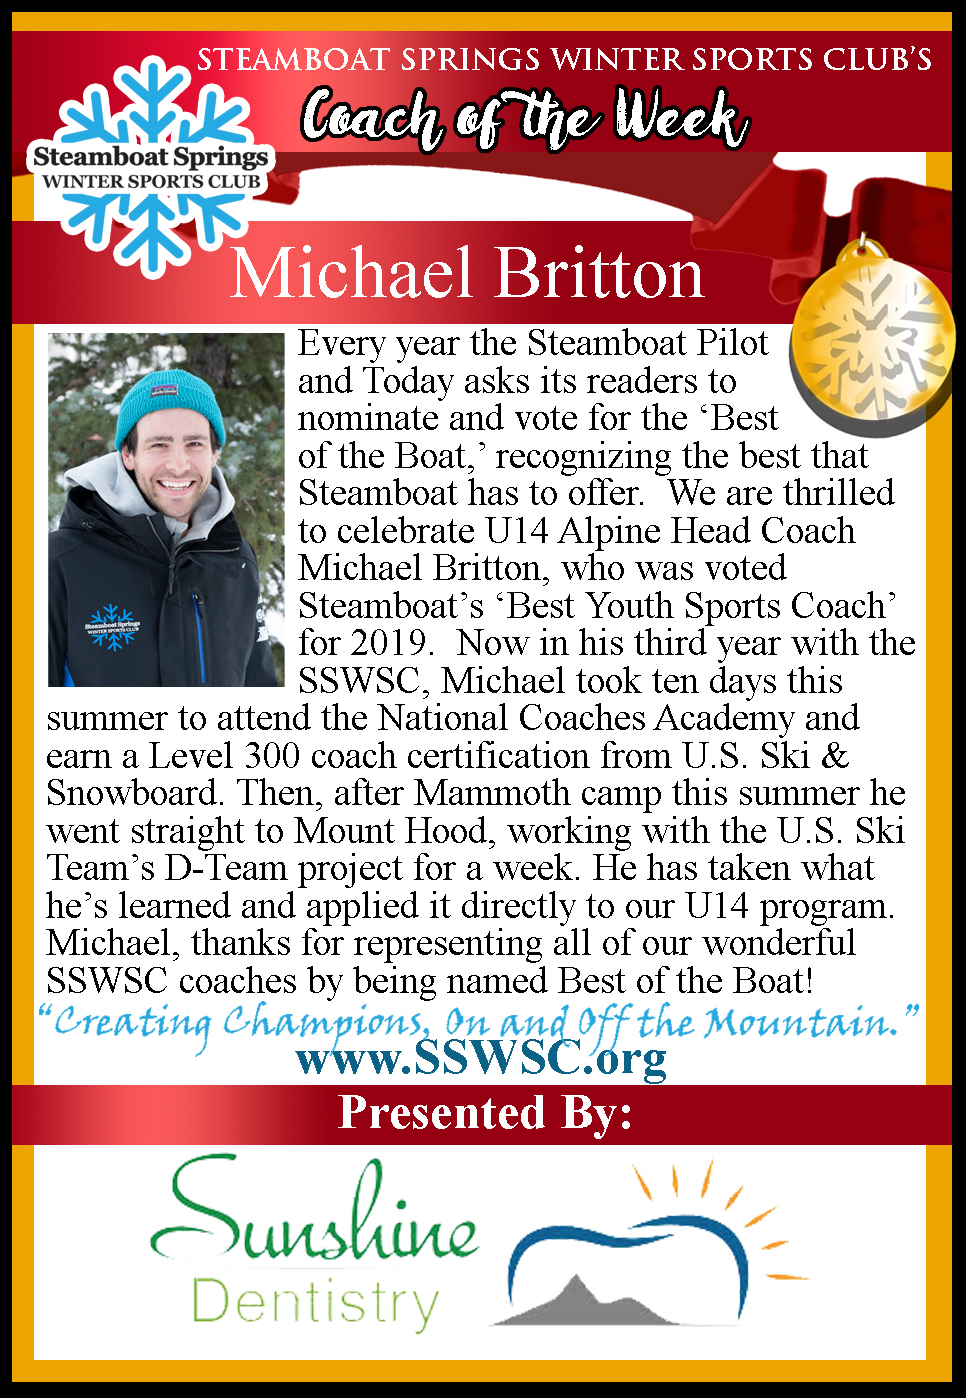 Coach of the Week, Michael Britton